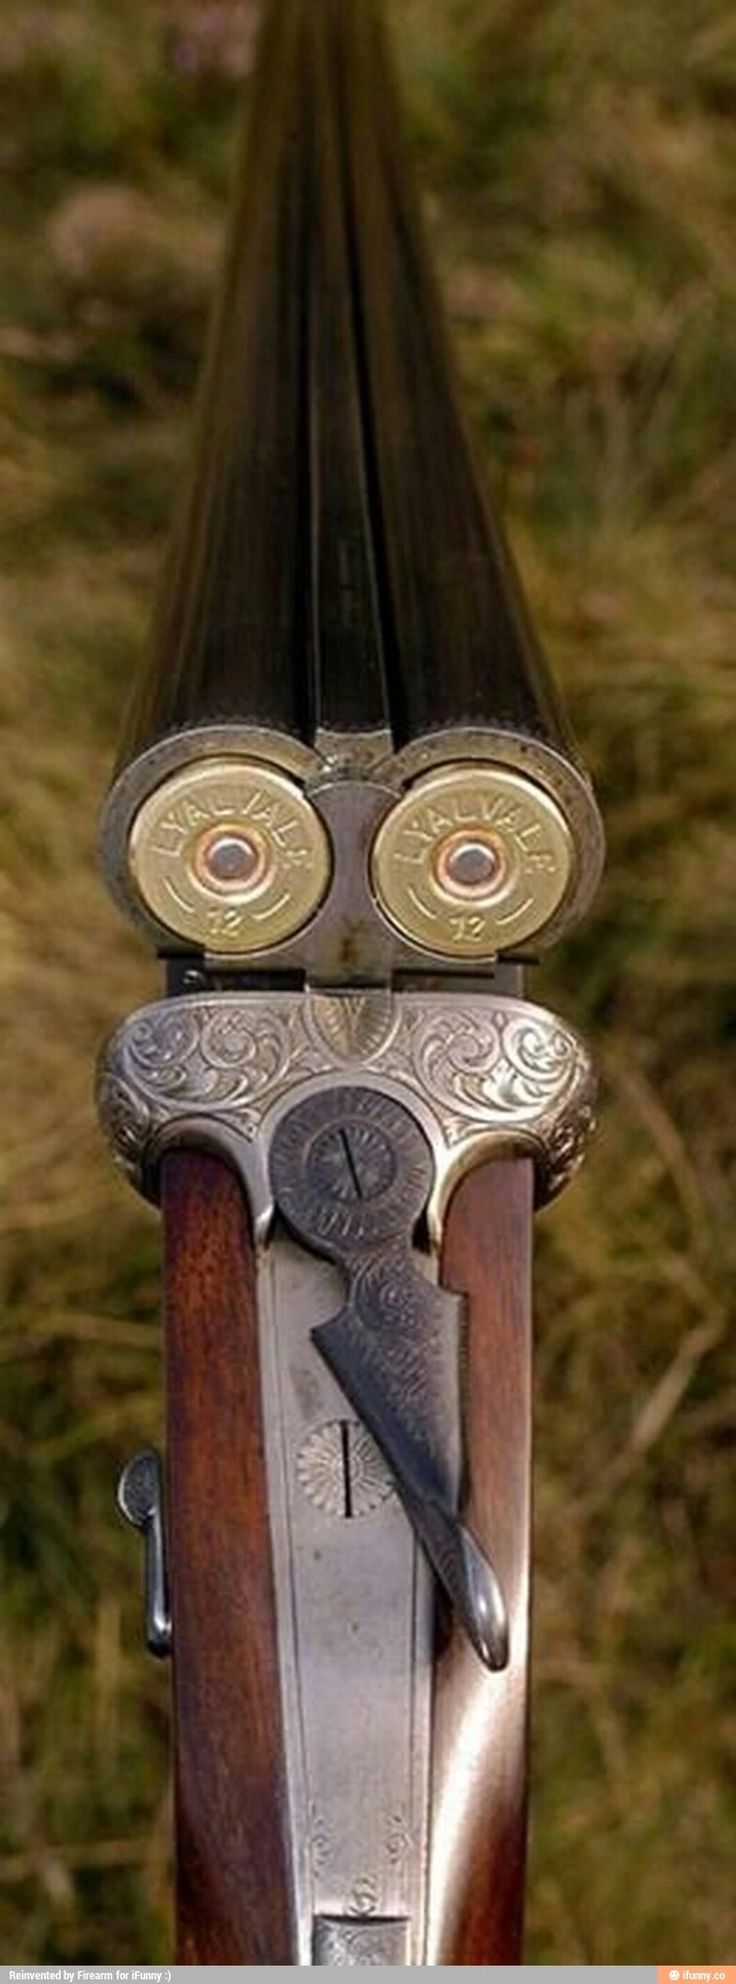 Gun room amp trophy room done hunting - Find This Pin And More On Guns By Brettjedi99